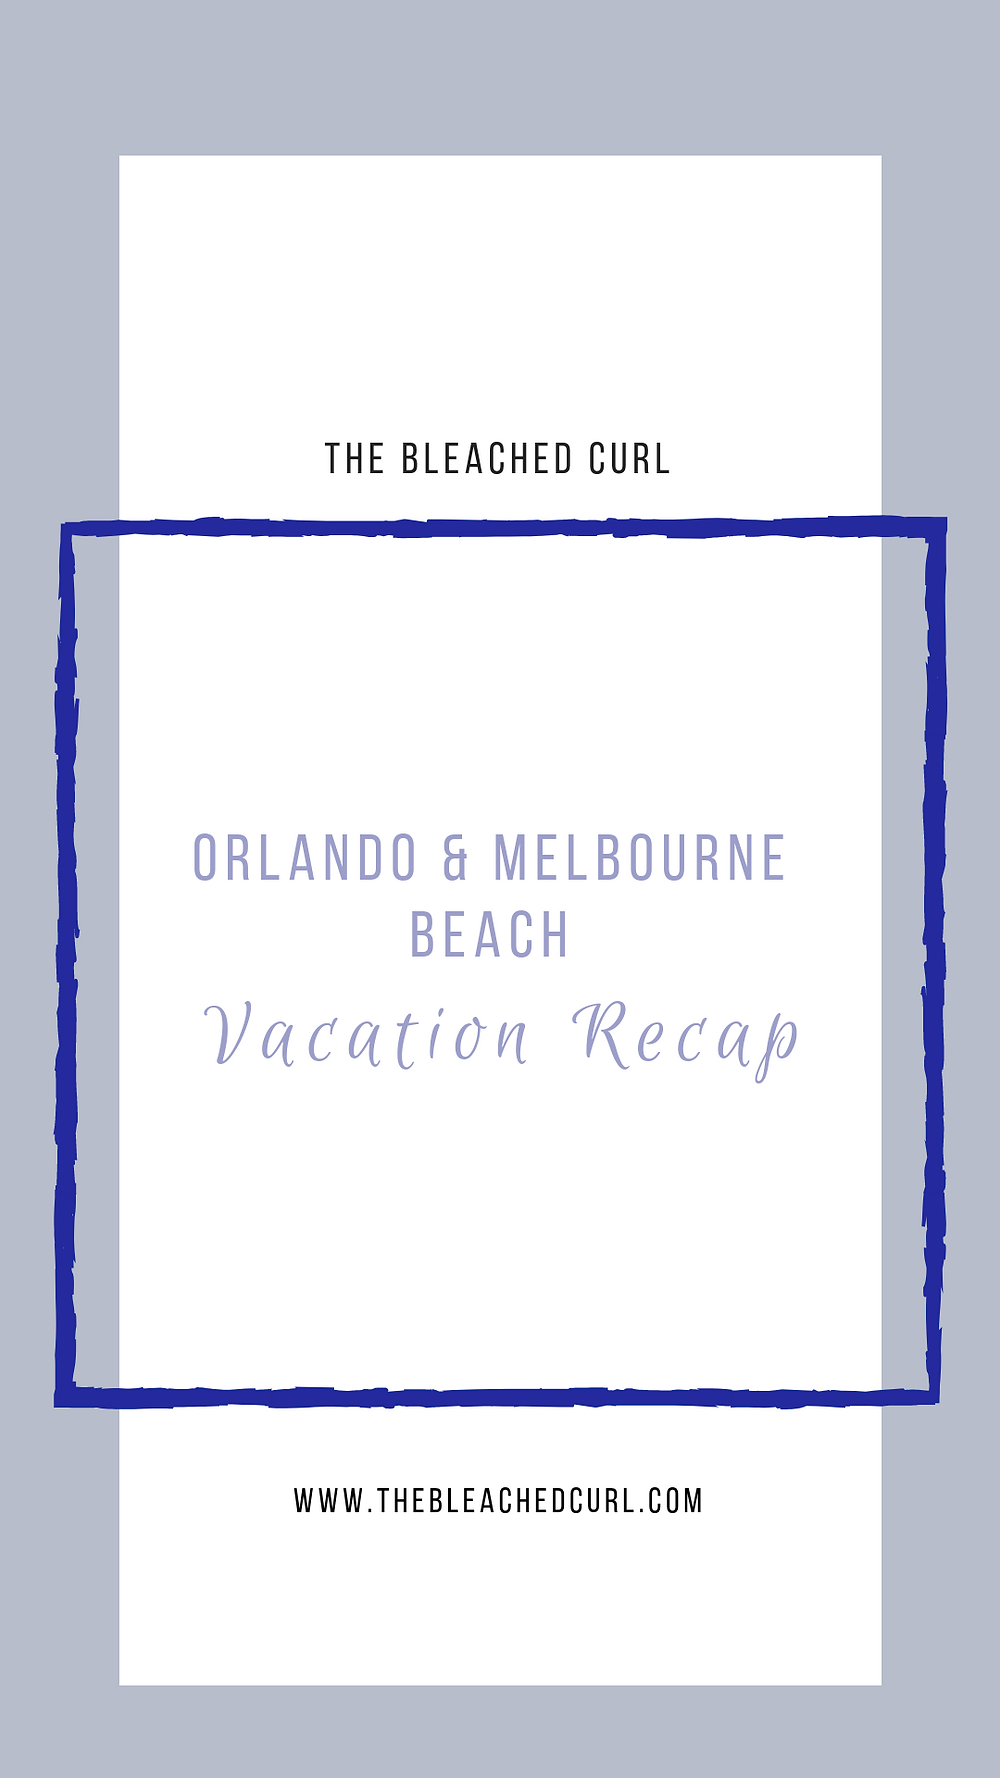 Orlando & Melbourne Beach Vacation Recap, The Bleached Curl, travel